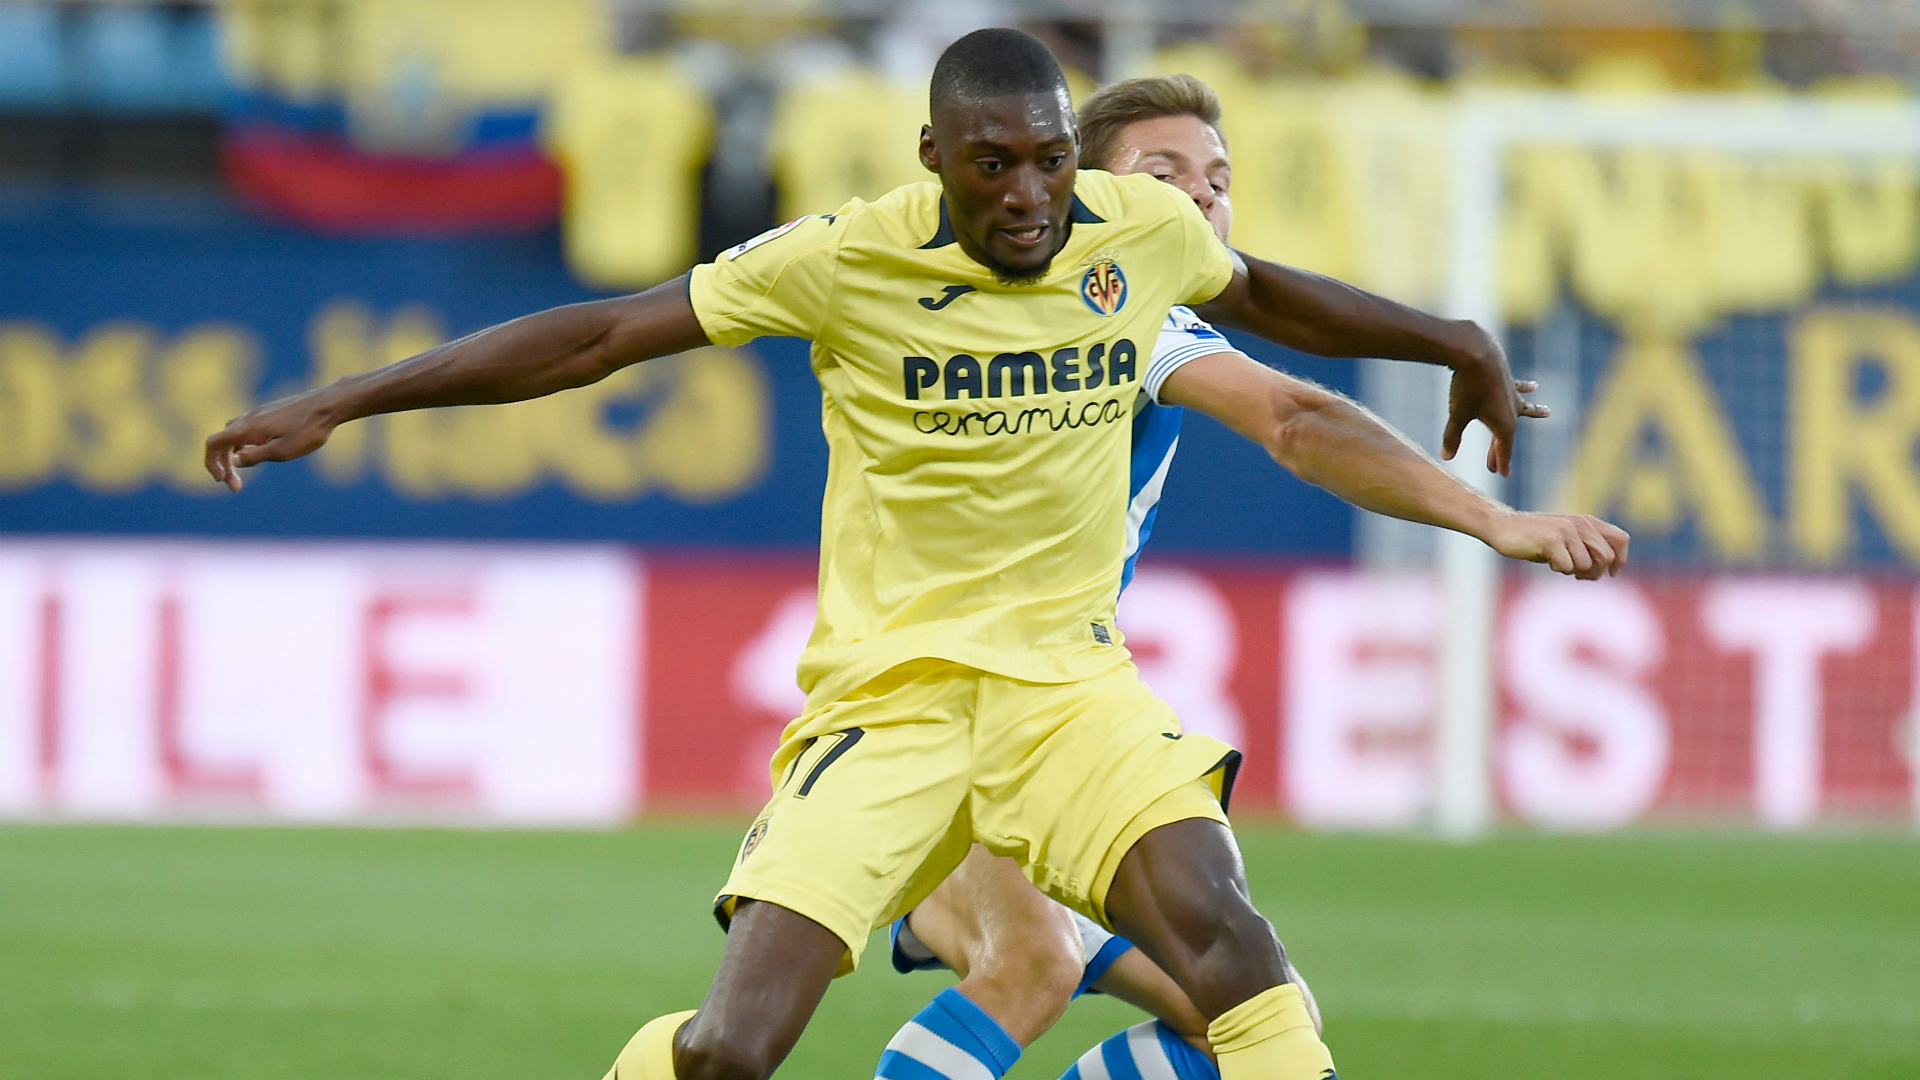 Villarreal striker Toko Ekambi scoops La Liga award